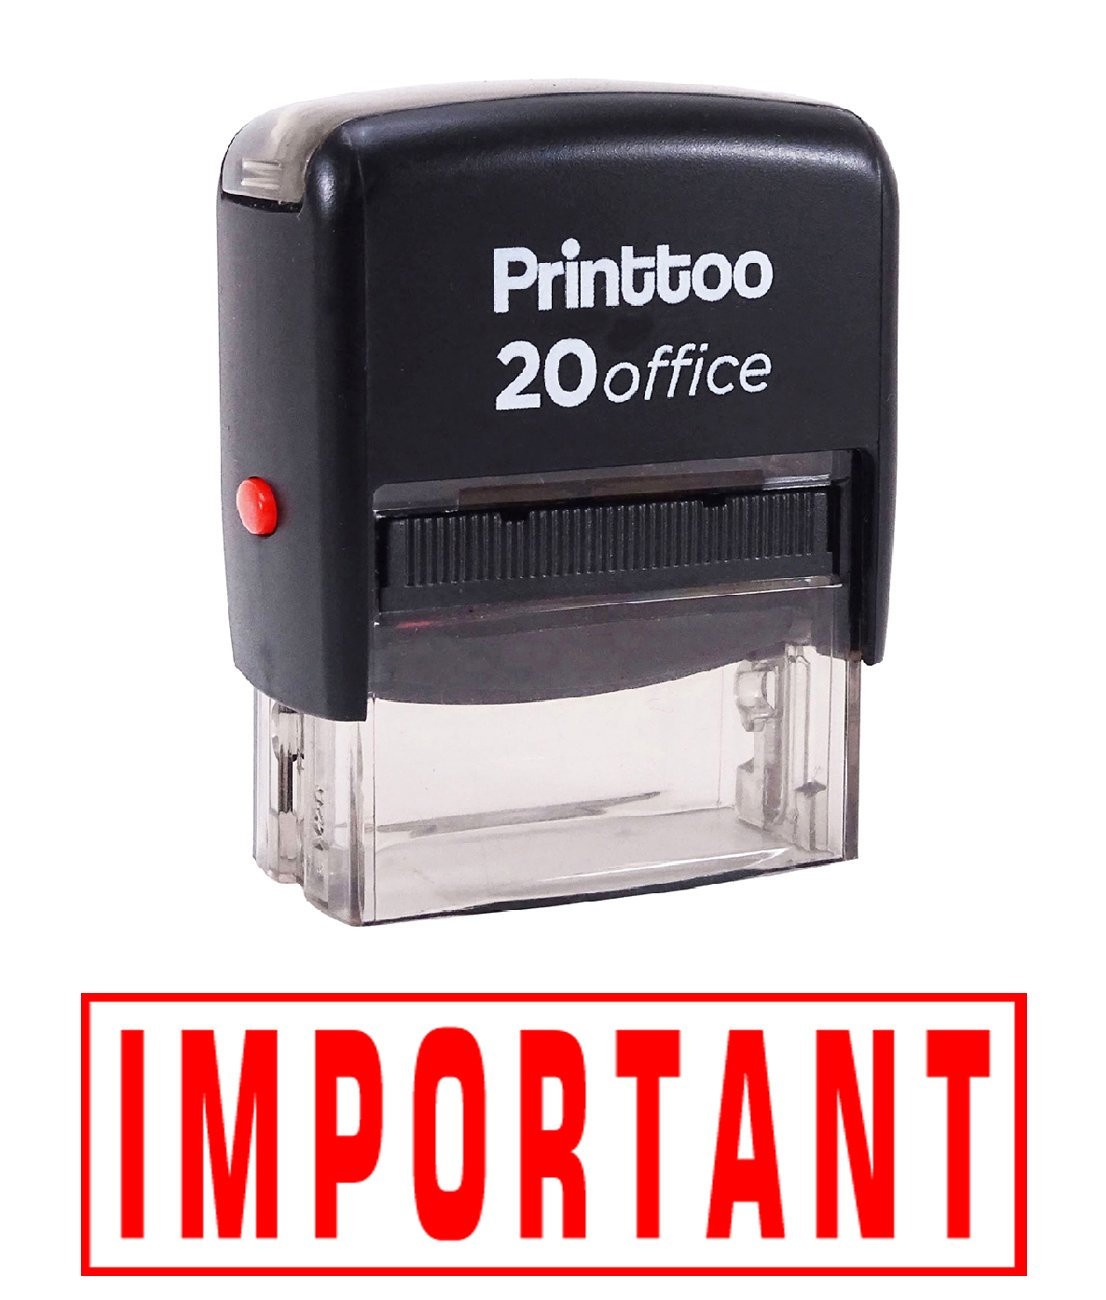 Printtoo IMPORTANT Self Inking Rubber Stamp Office Stationary Custom Stamp-Red